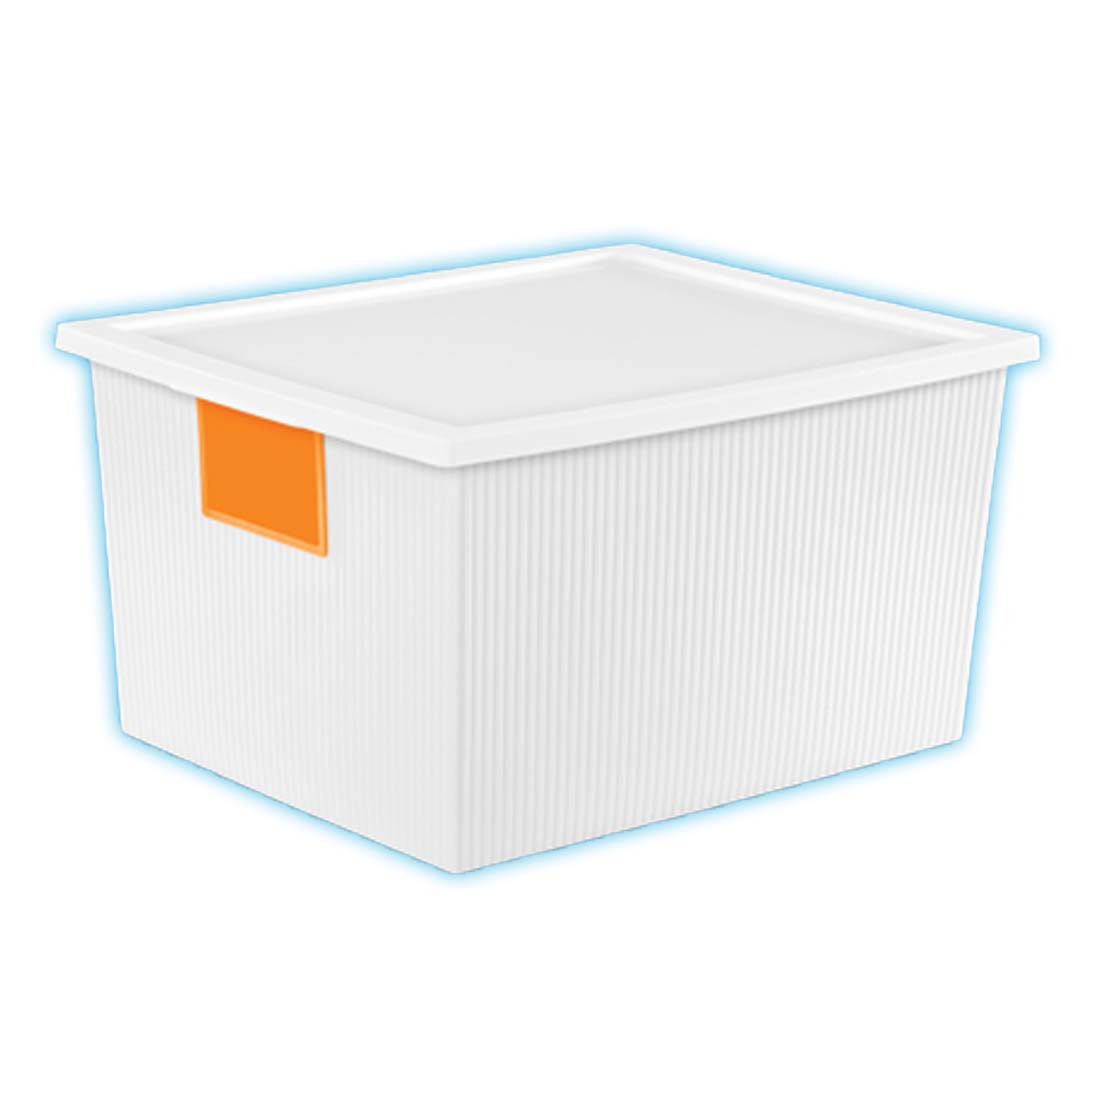 View STERILITE STORAGE BOX 16.5 X 13.25 X 8.75 INCH 25 QUART WITH 2 DRY ERASE LABELS ORANGE AND BLUE ** MADE IN USA **